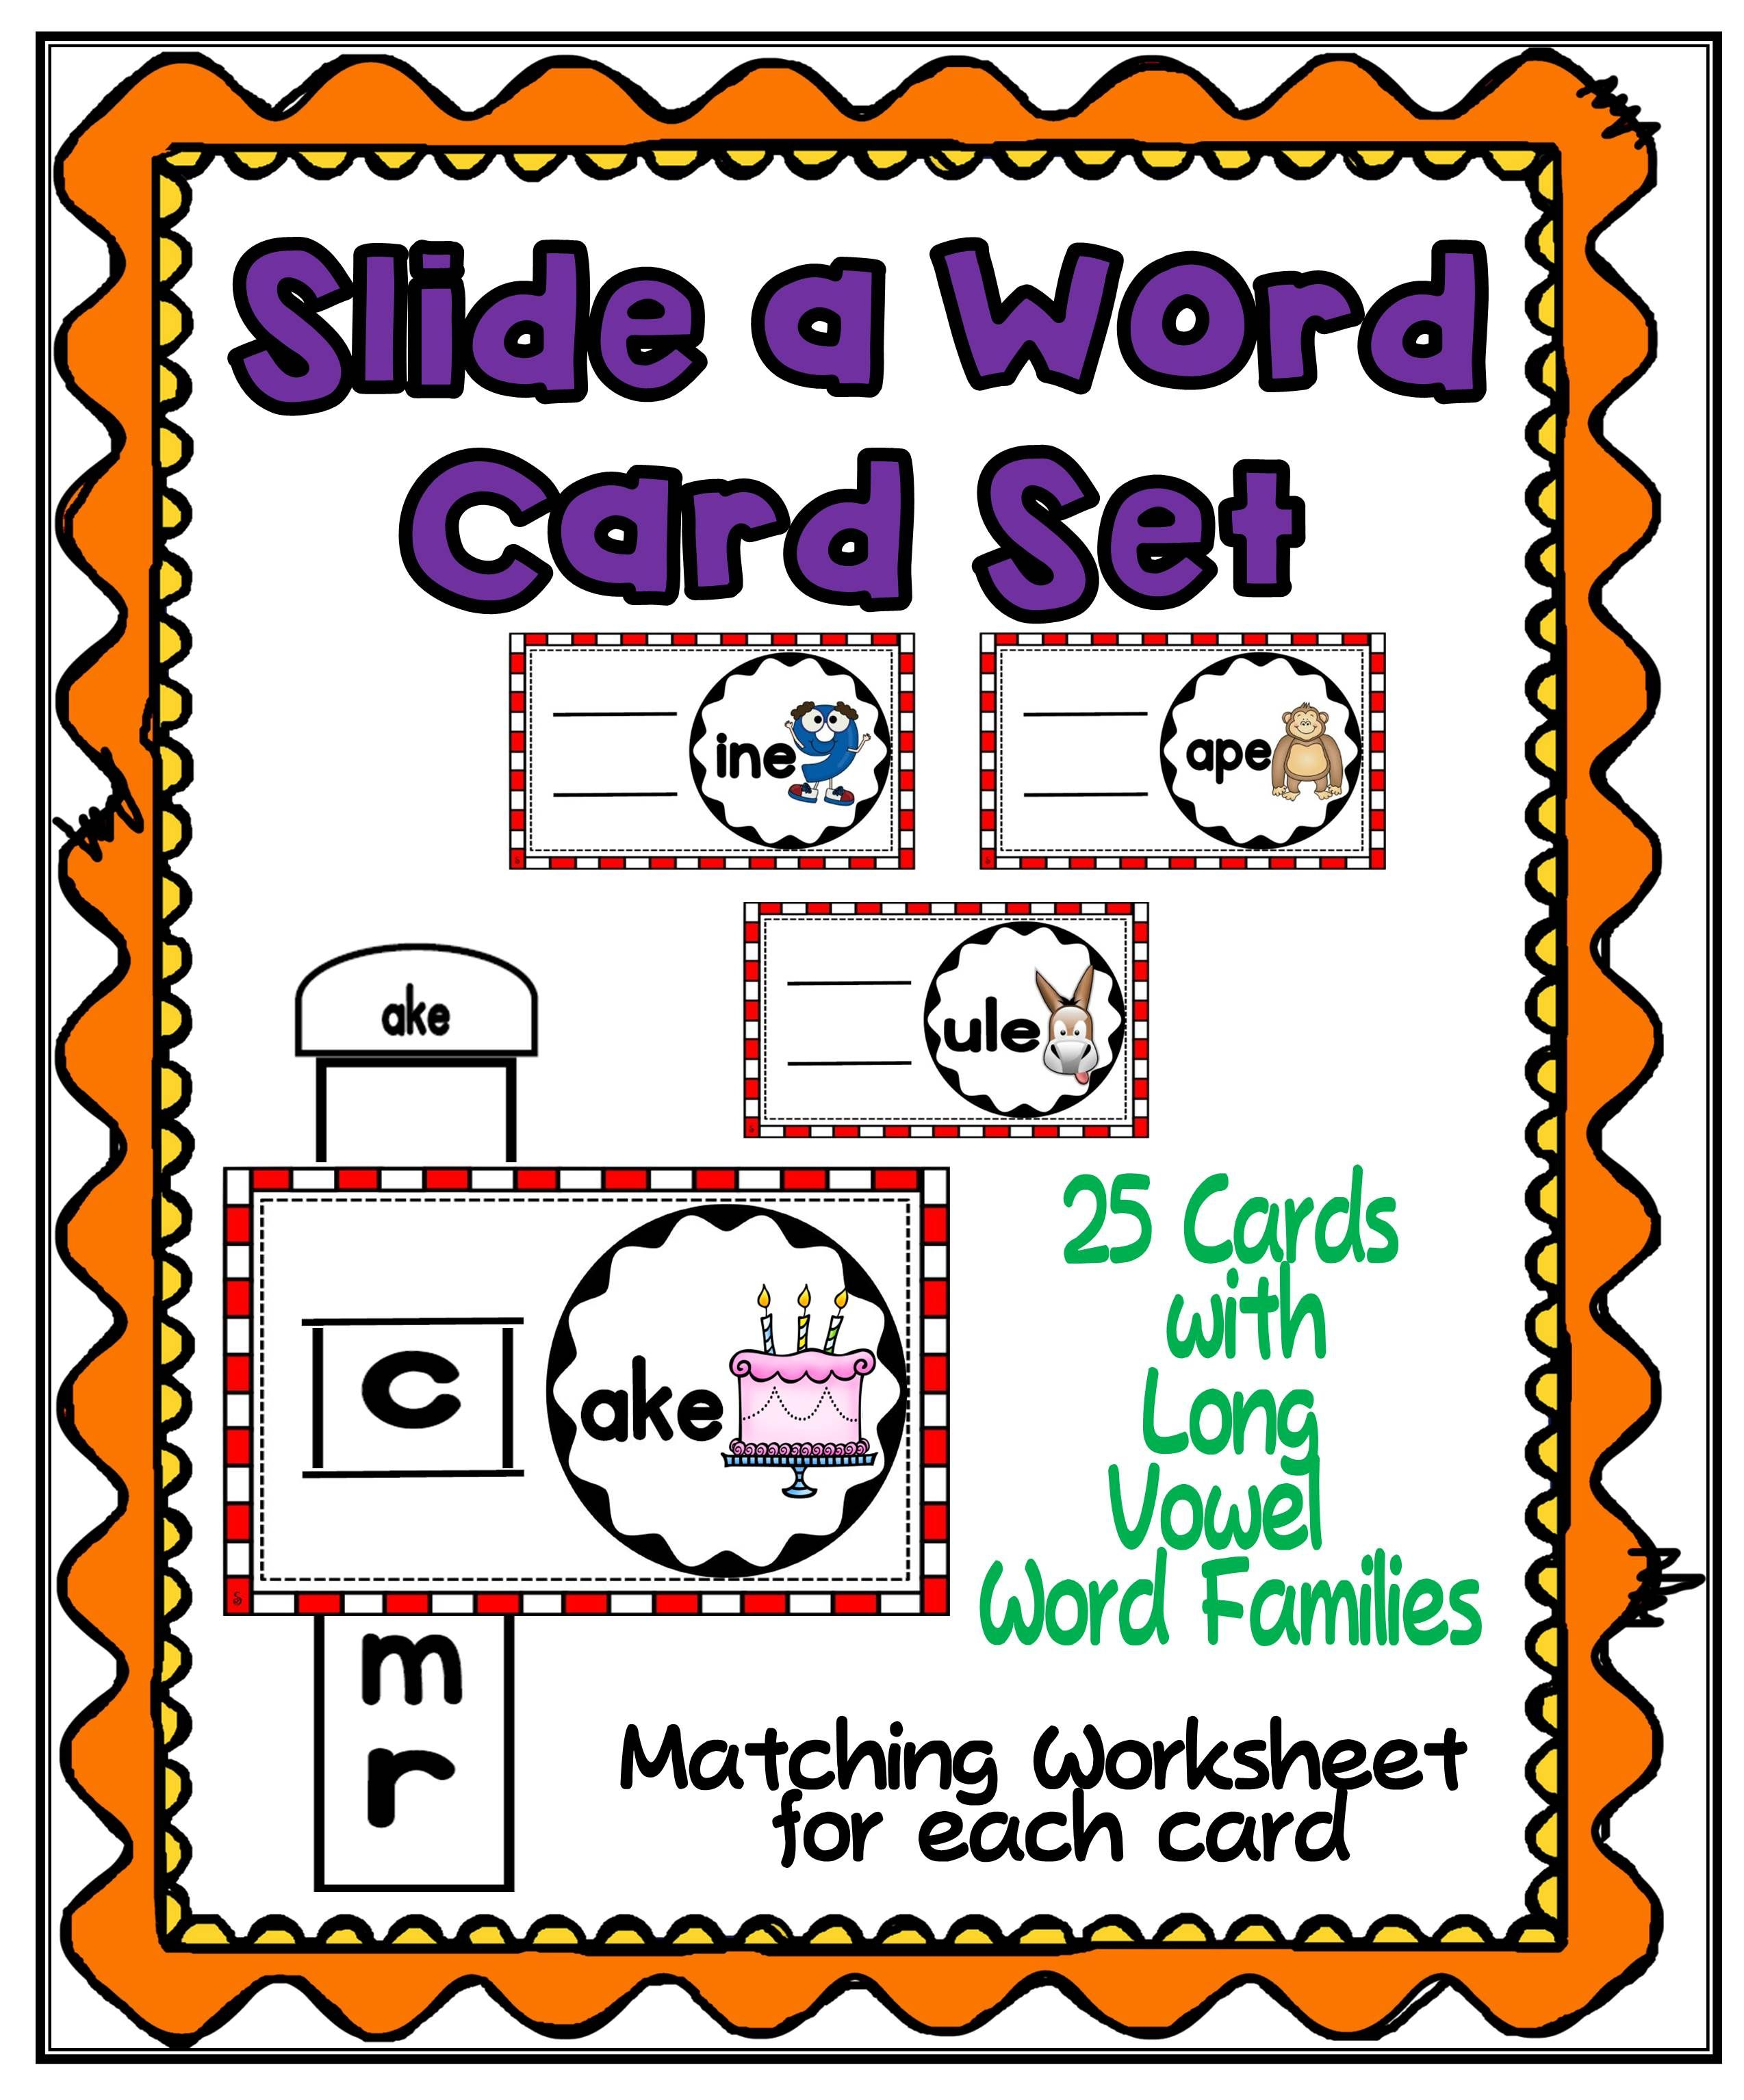 Slide A Word Long Vowels Family Set